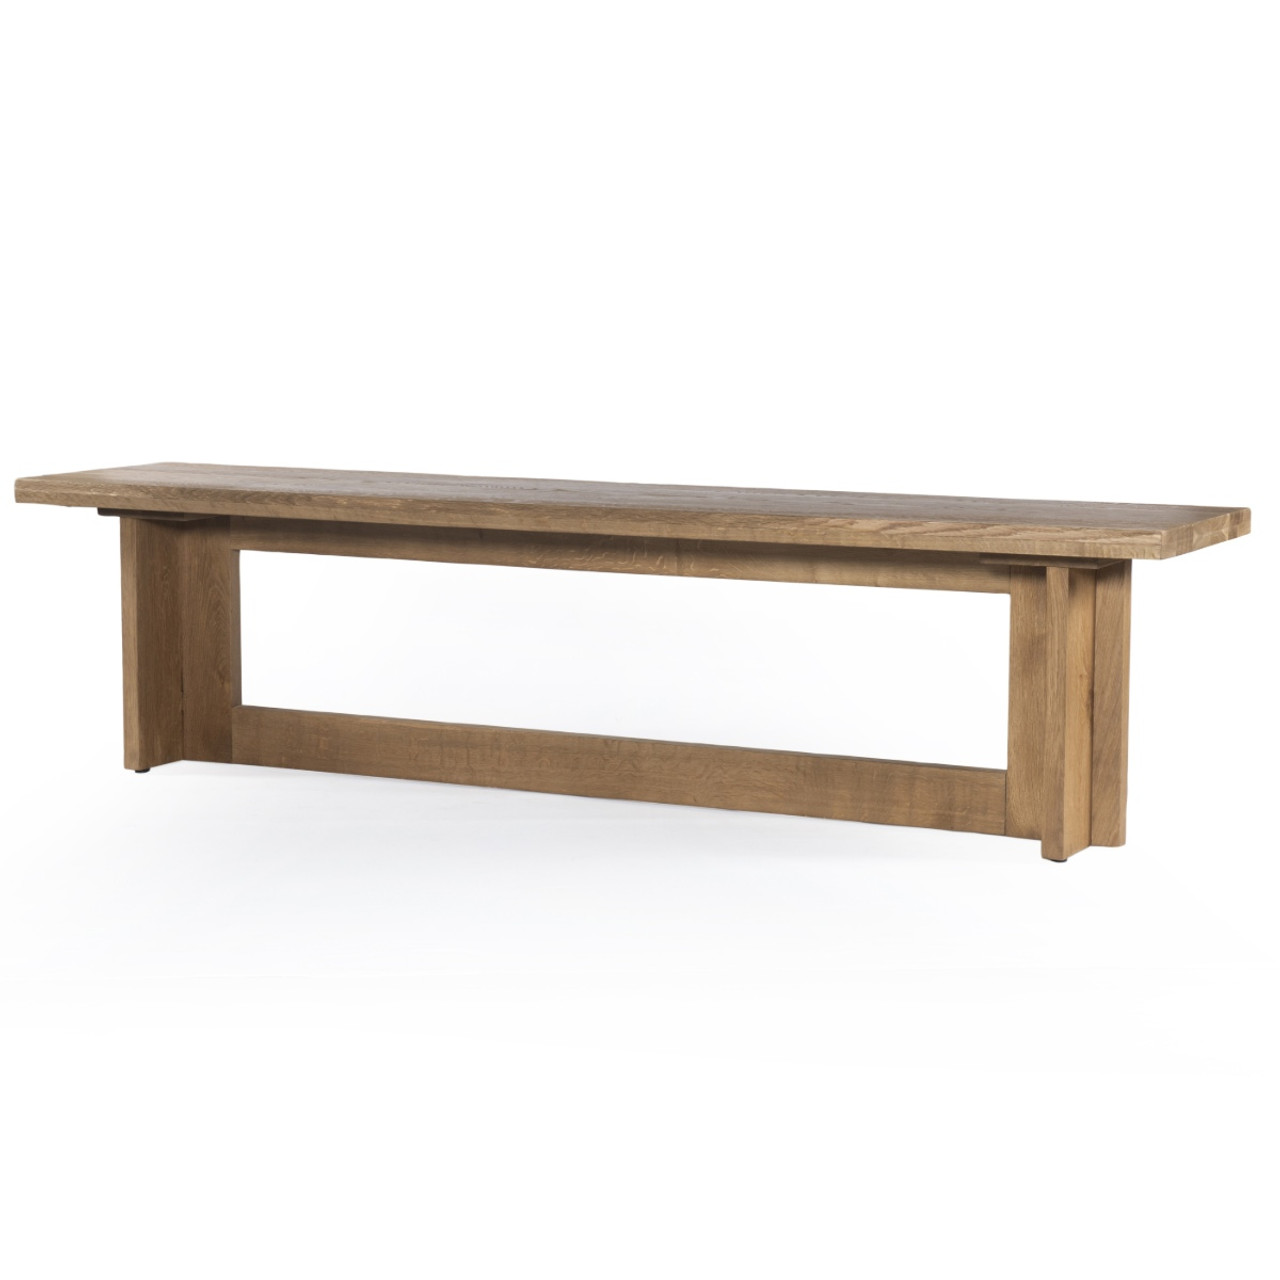 Admirable Erie Oak Wood Modern Trestle Dining Bench 81 Gmtry Best Dining Table And Chair Ideas Images Gmtryco